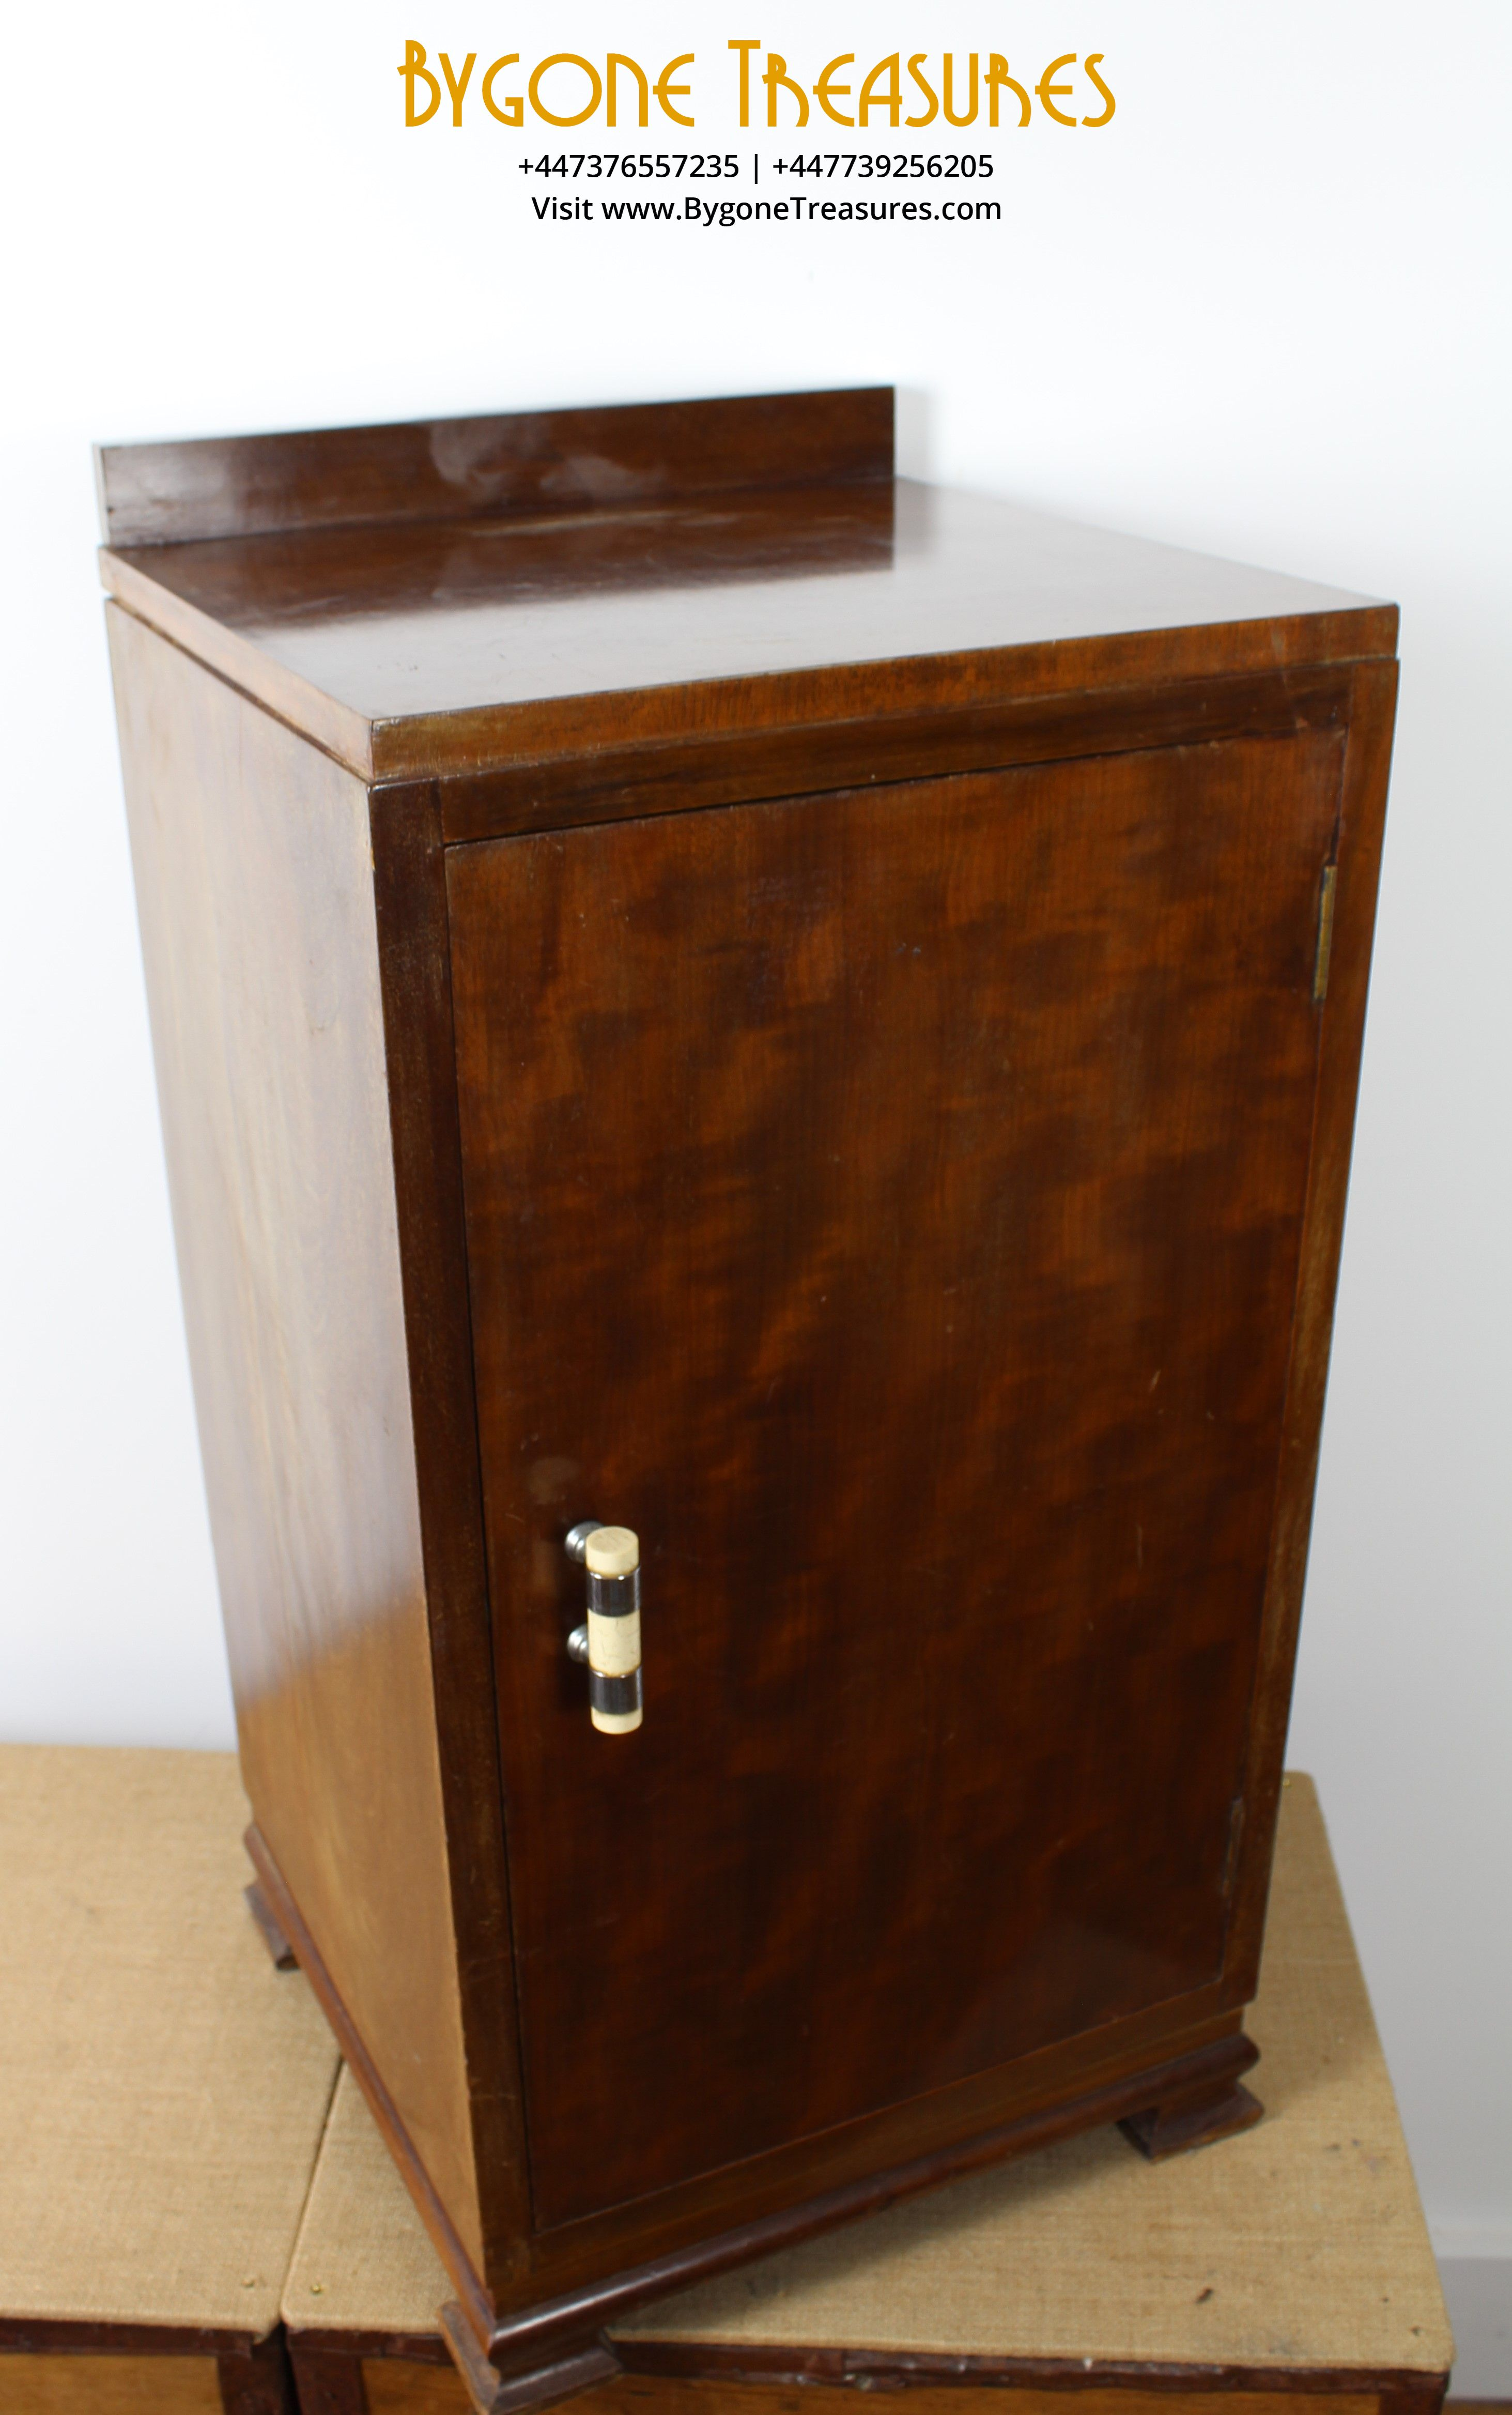 1940s WOODEN BEDSIDE CUPBOARD WITH BONE HANDLE (3)_result